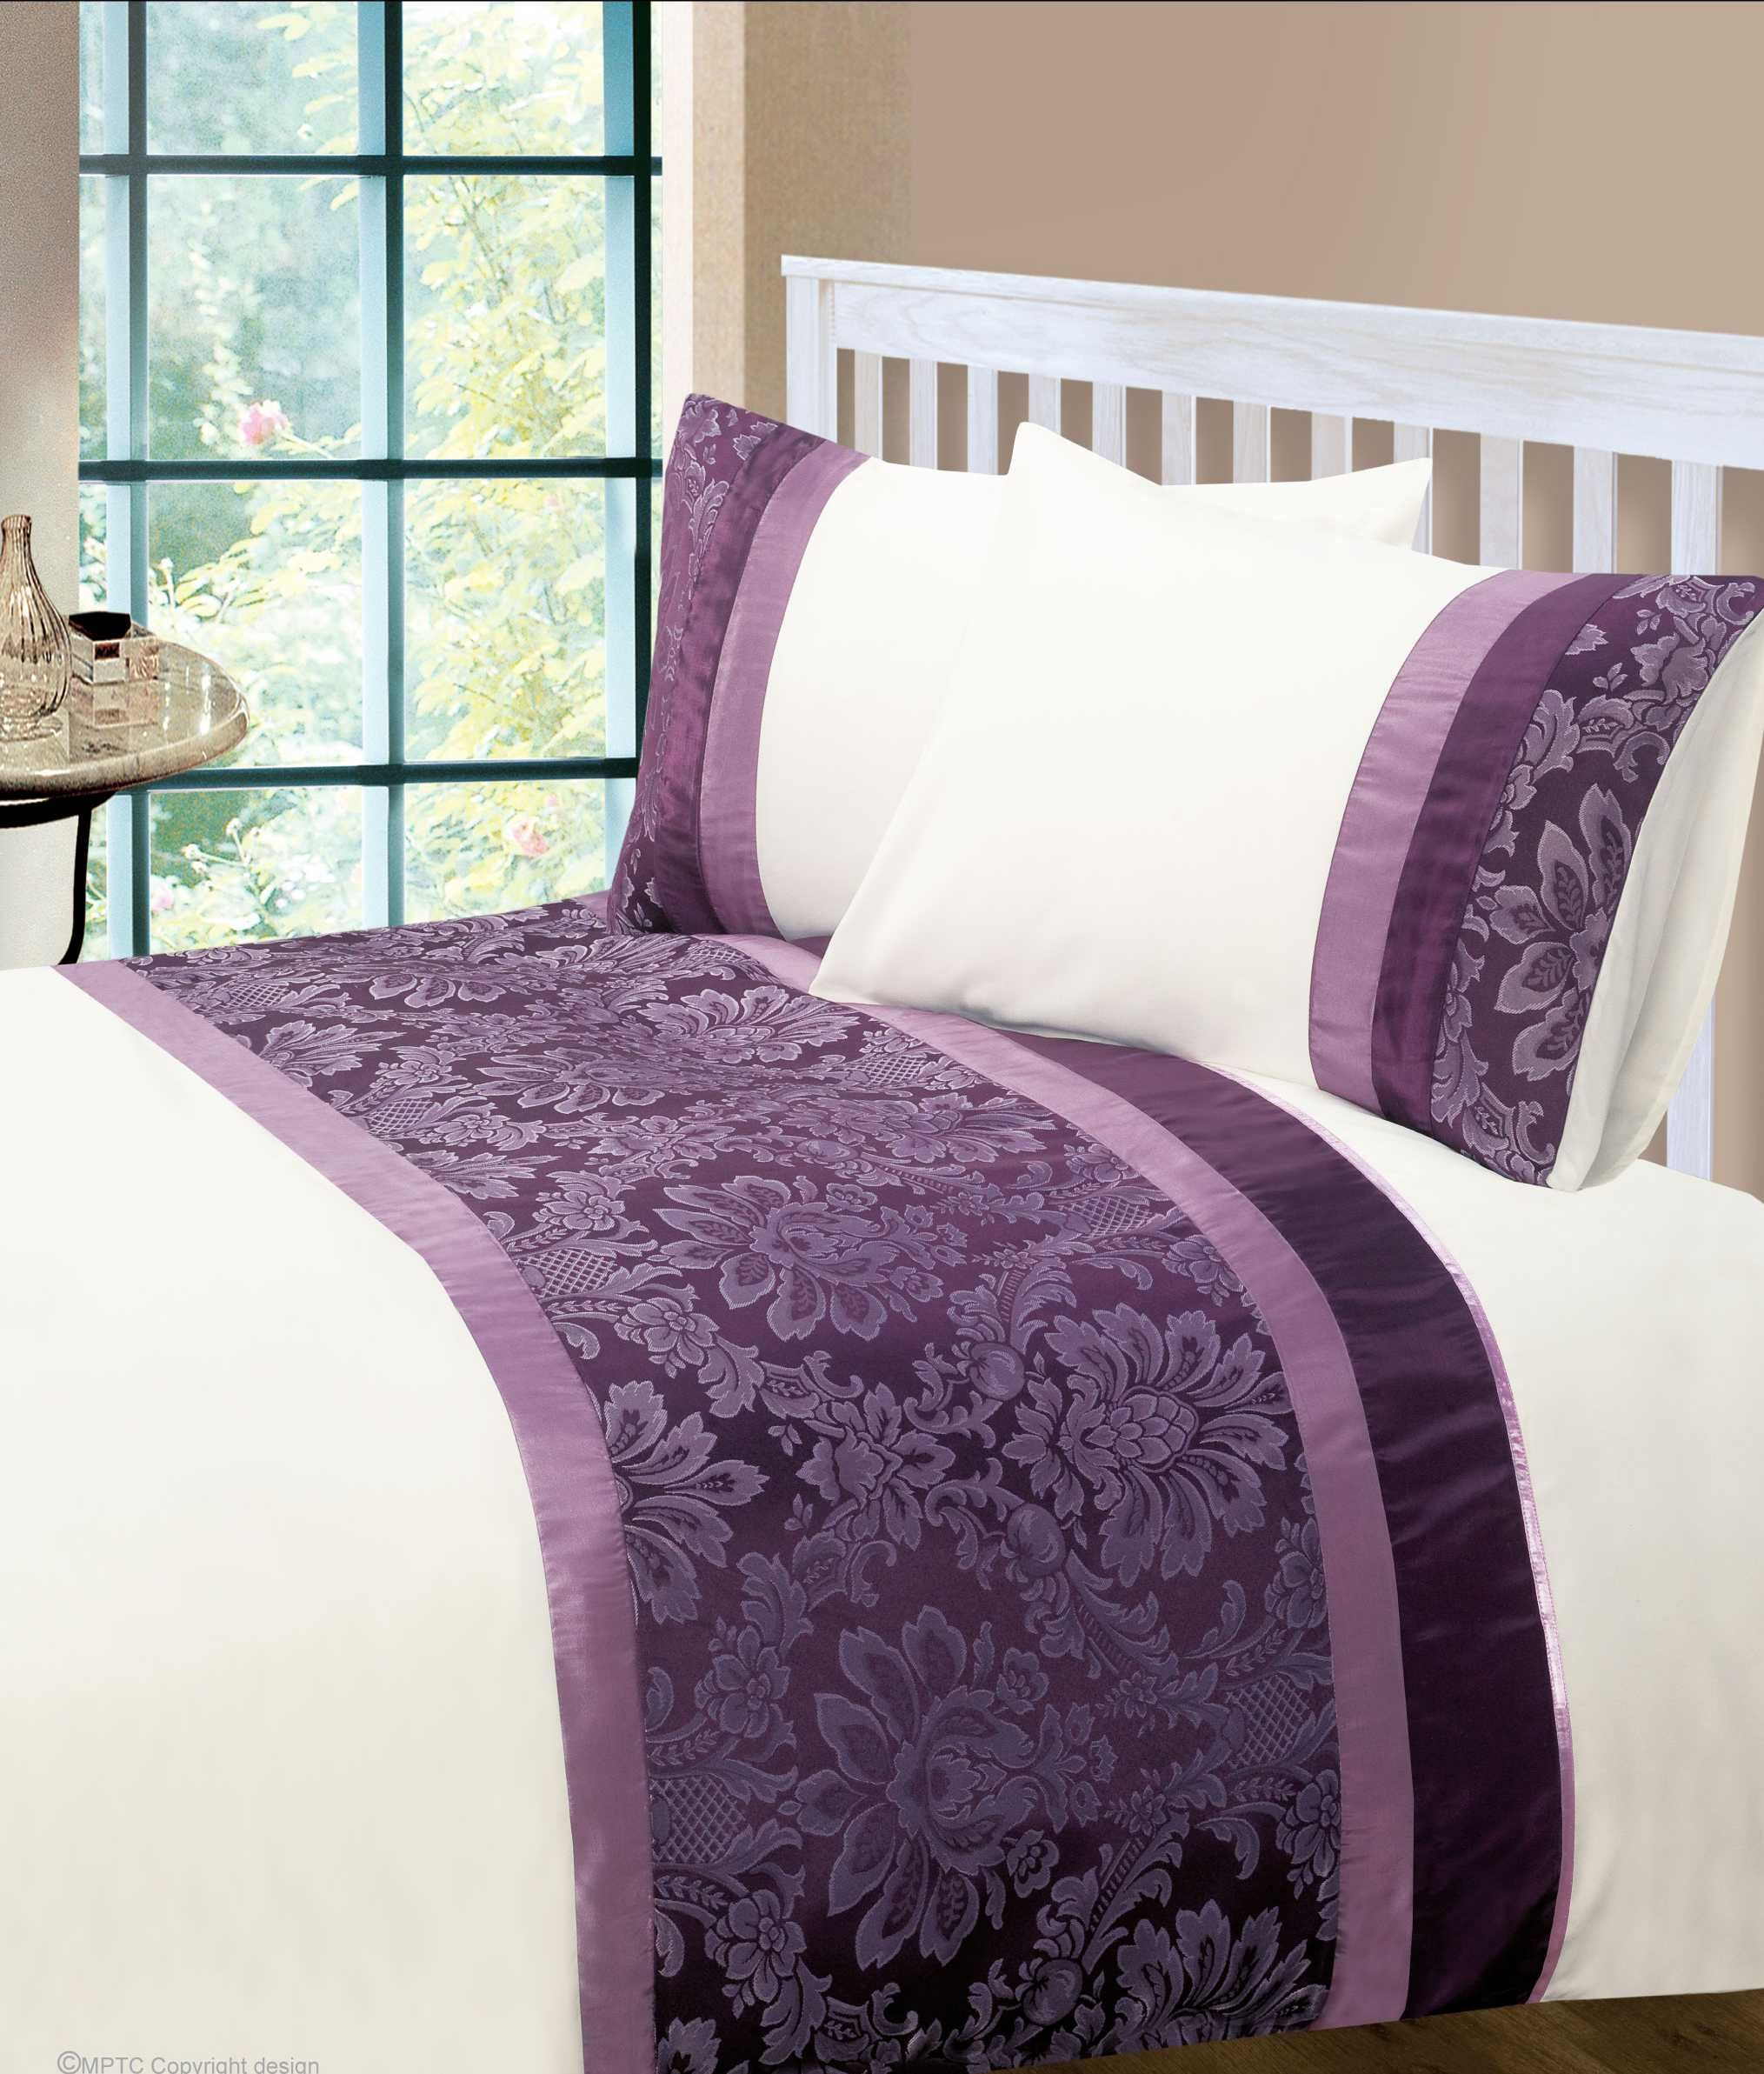 aubergine colour modern stylish damask bedding quality duvet quilt  - aubergine colour modern stylish damask bedding quality duvet quilt cover set